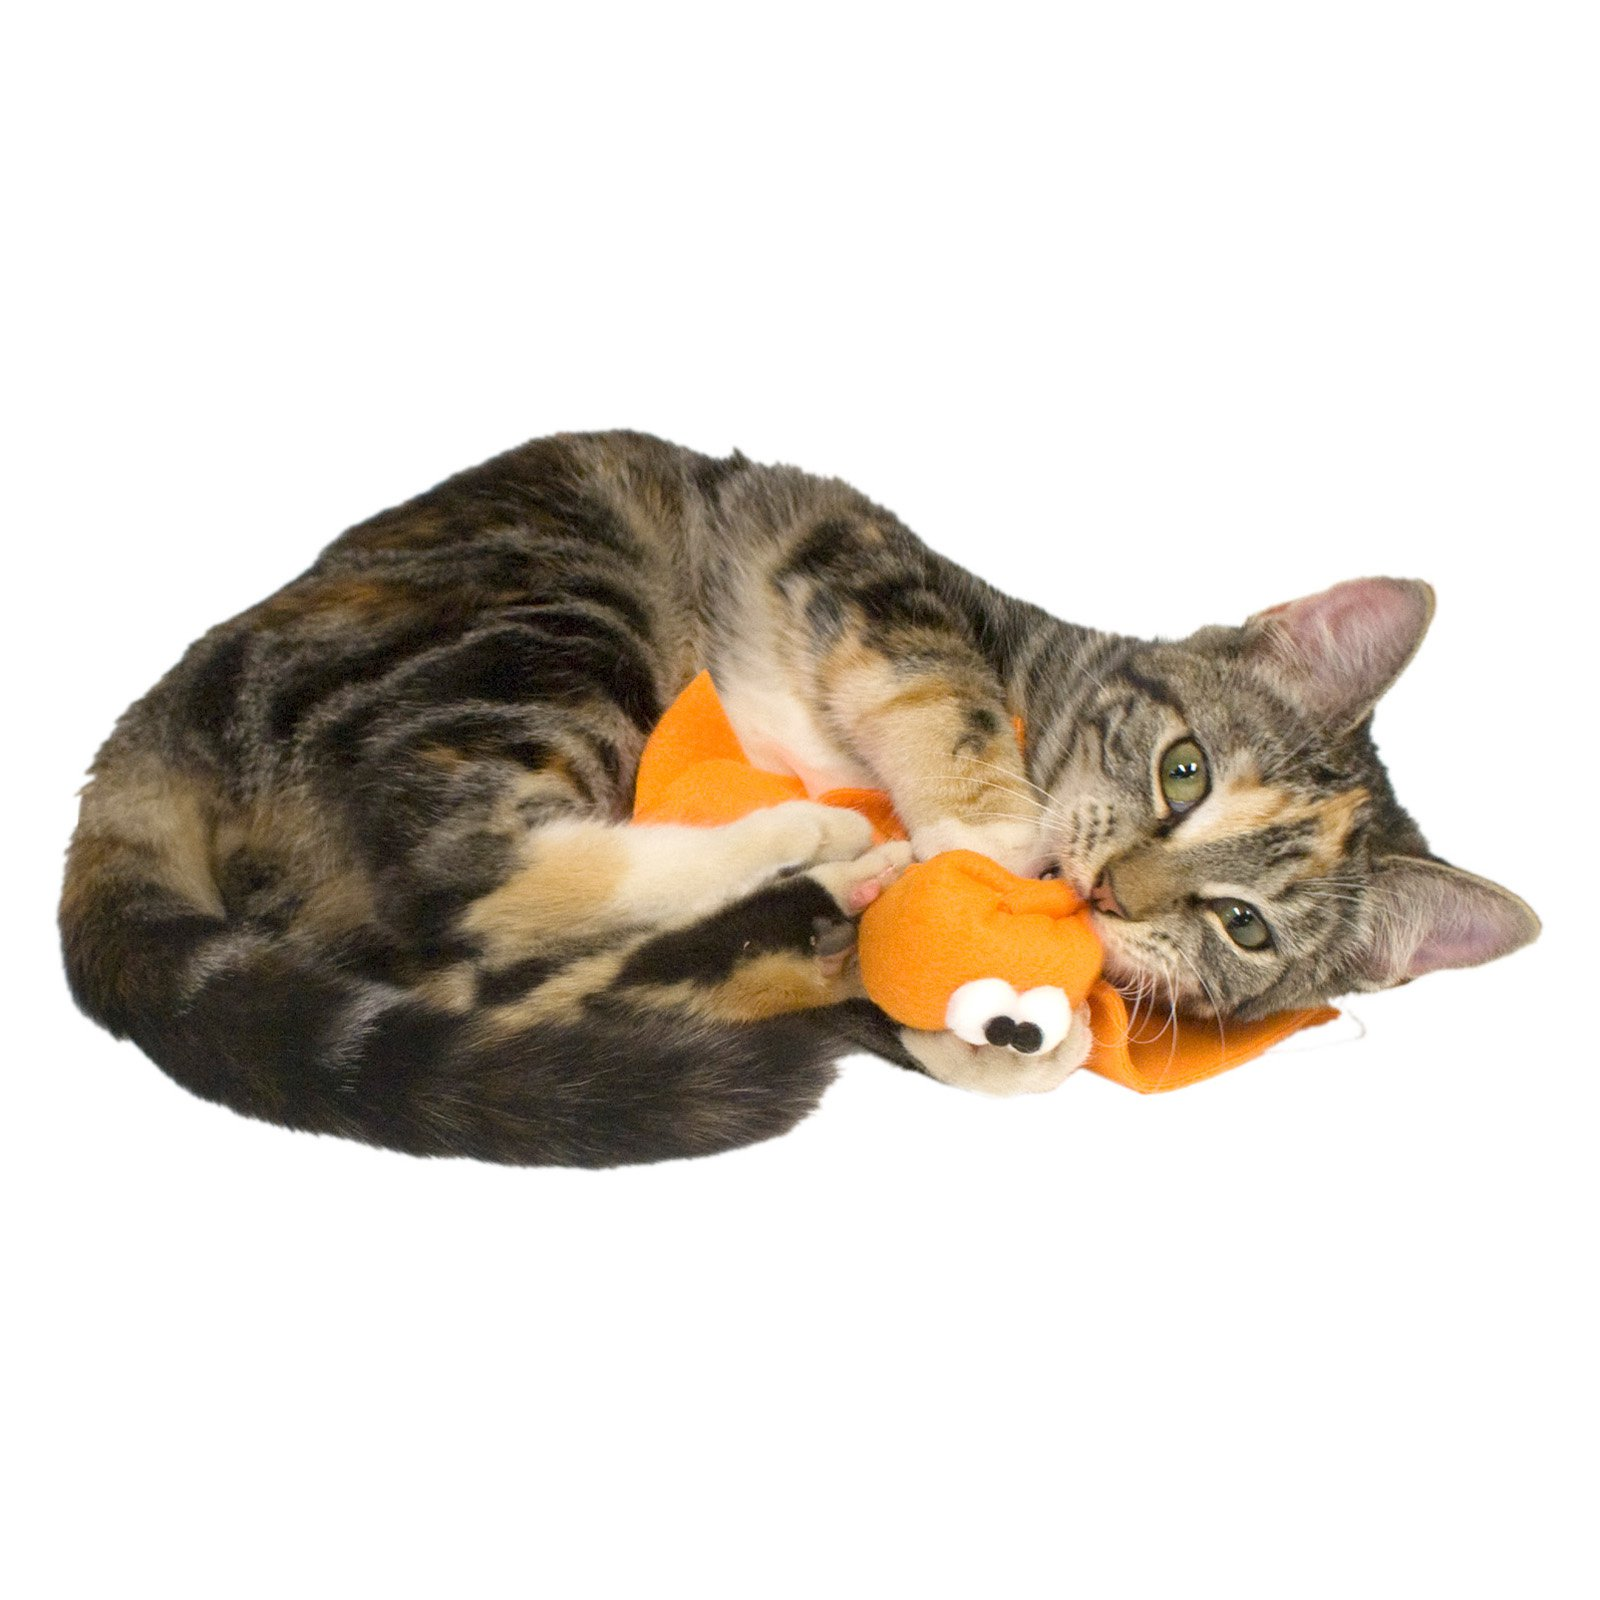 Goldie Goldfish Catnip Cat Toy by Imperial Cat